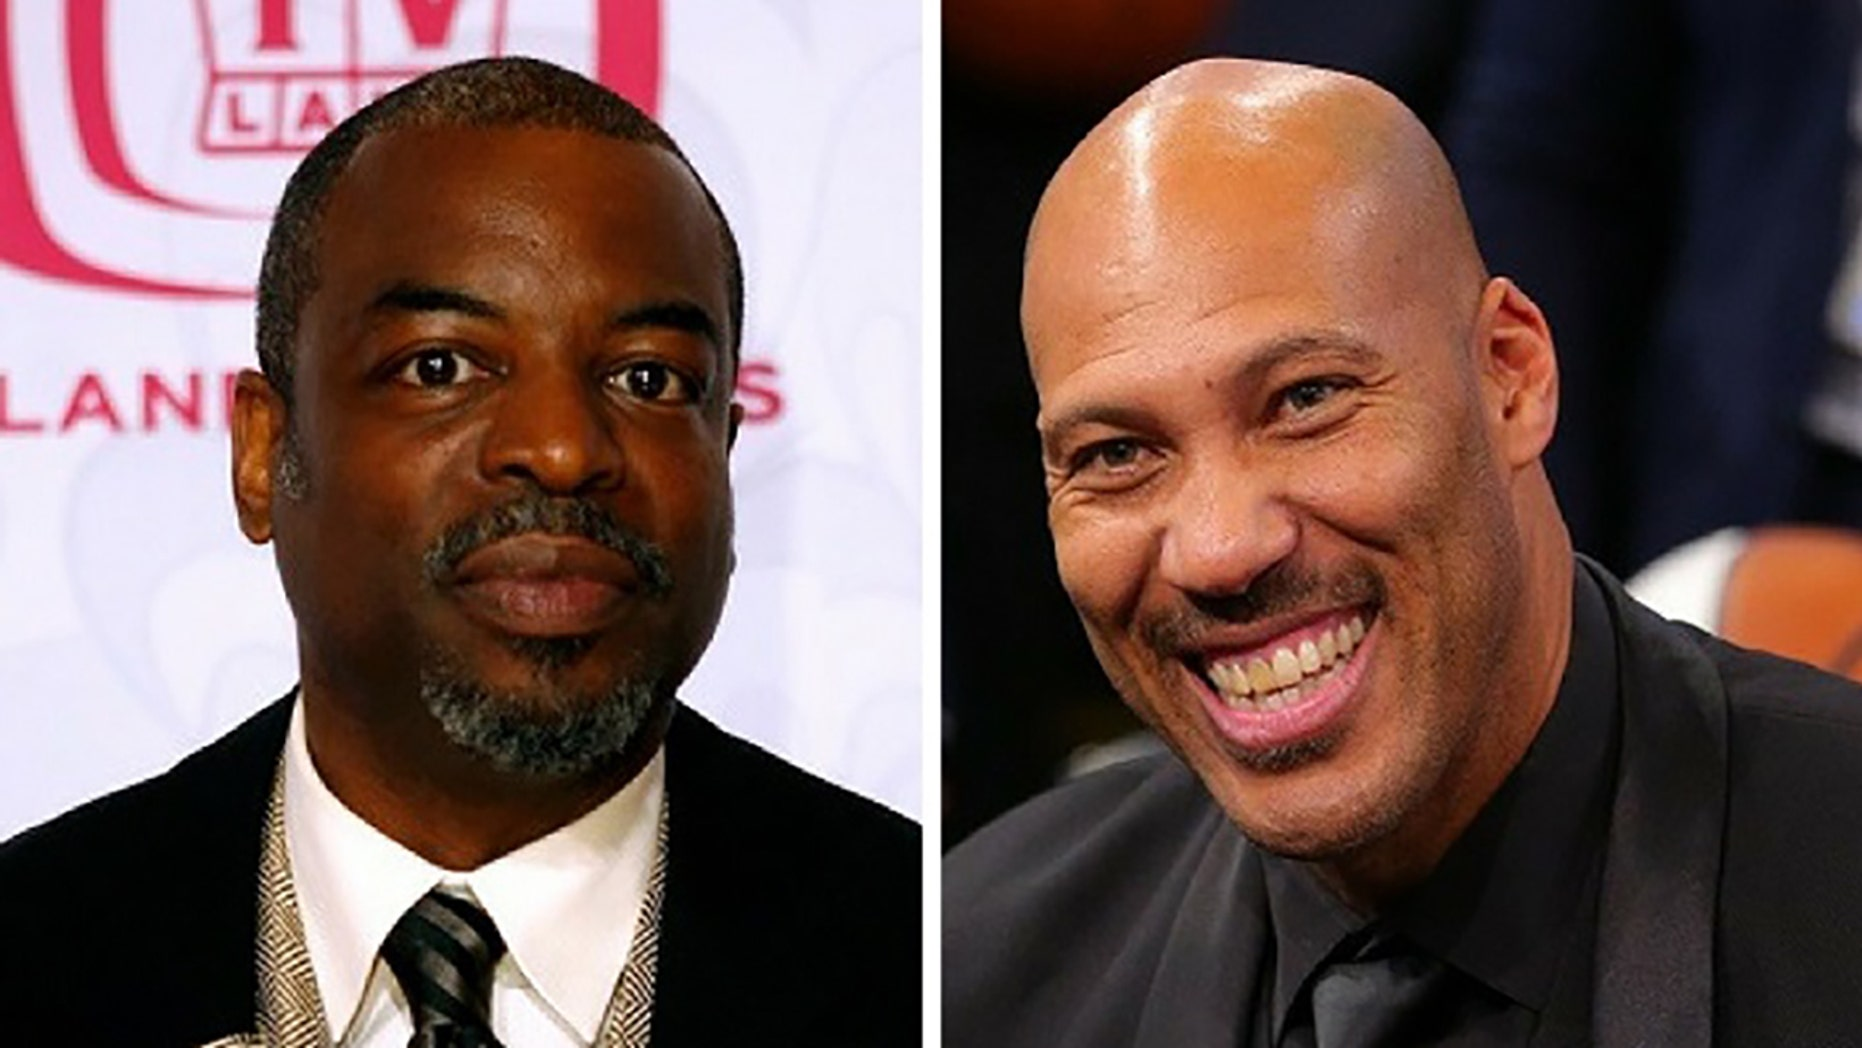 'Reading Rainbow' host LeVar Burton keeps getting mistaken on Twitter for basketball's LaVar Ball.